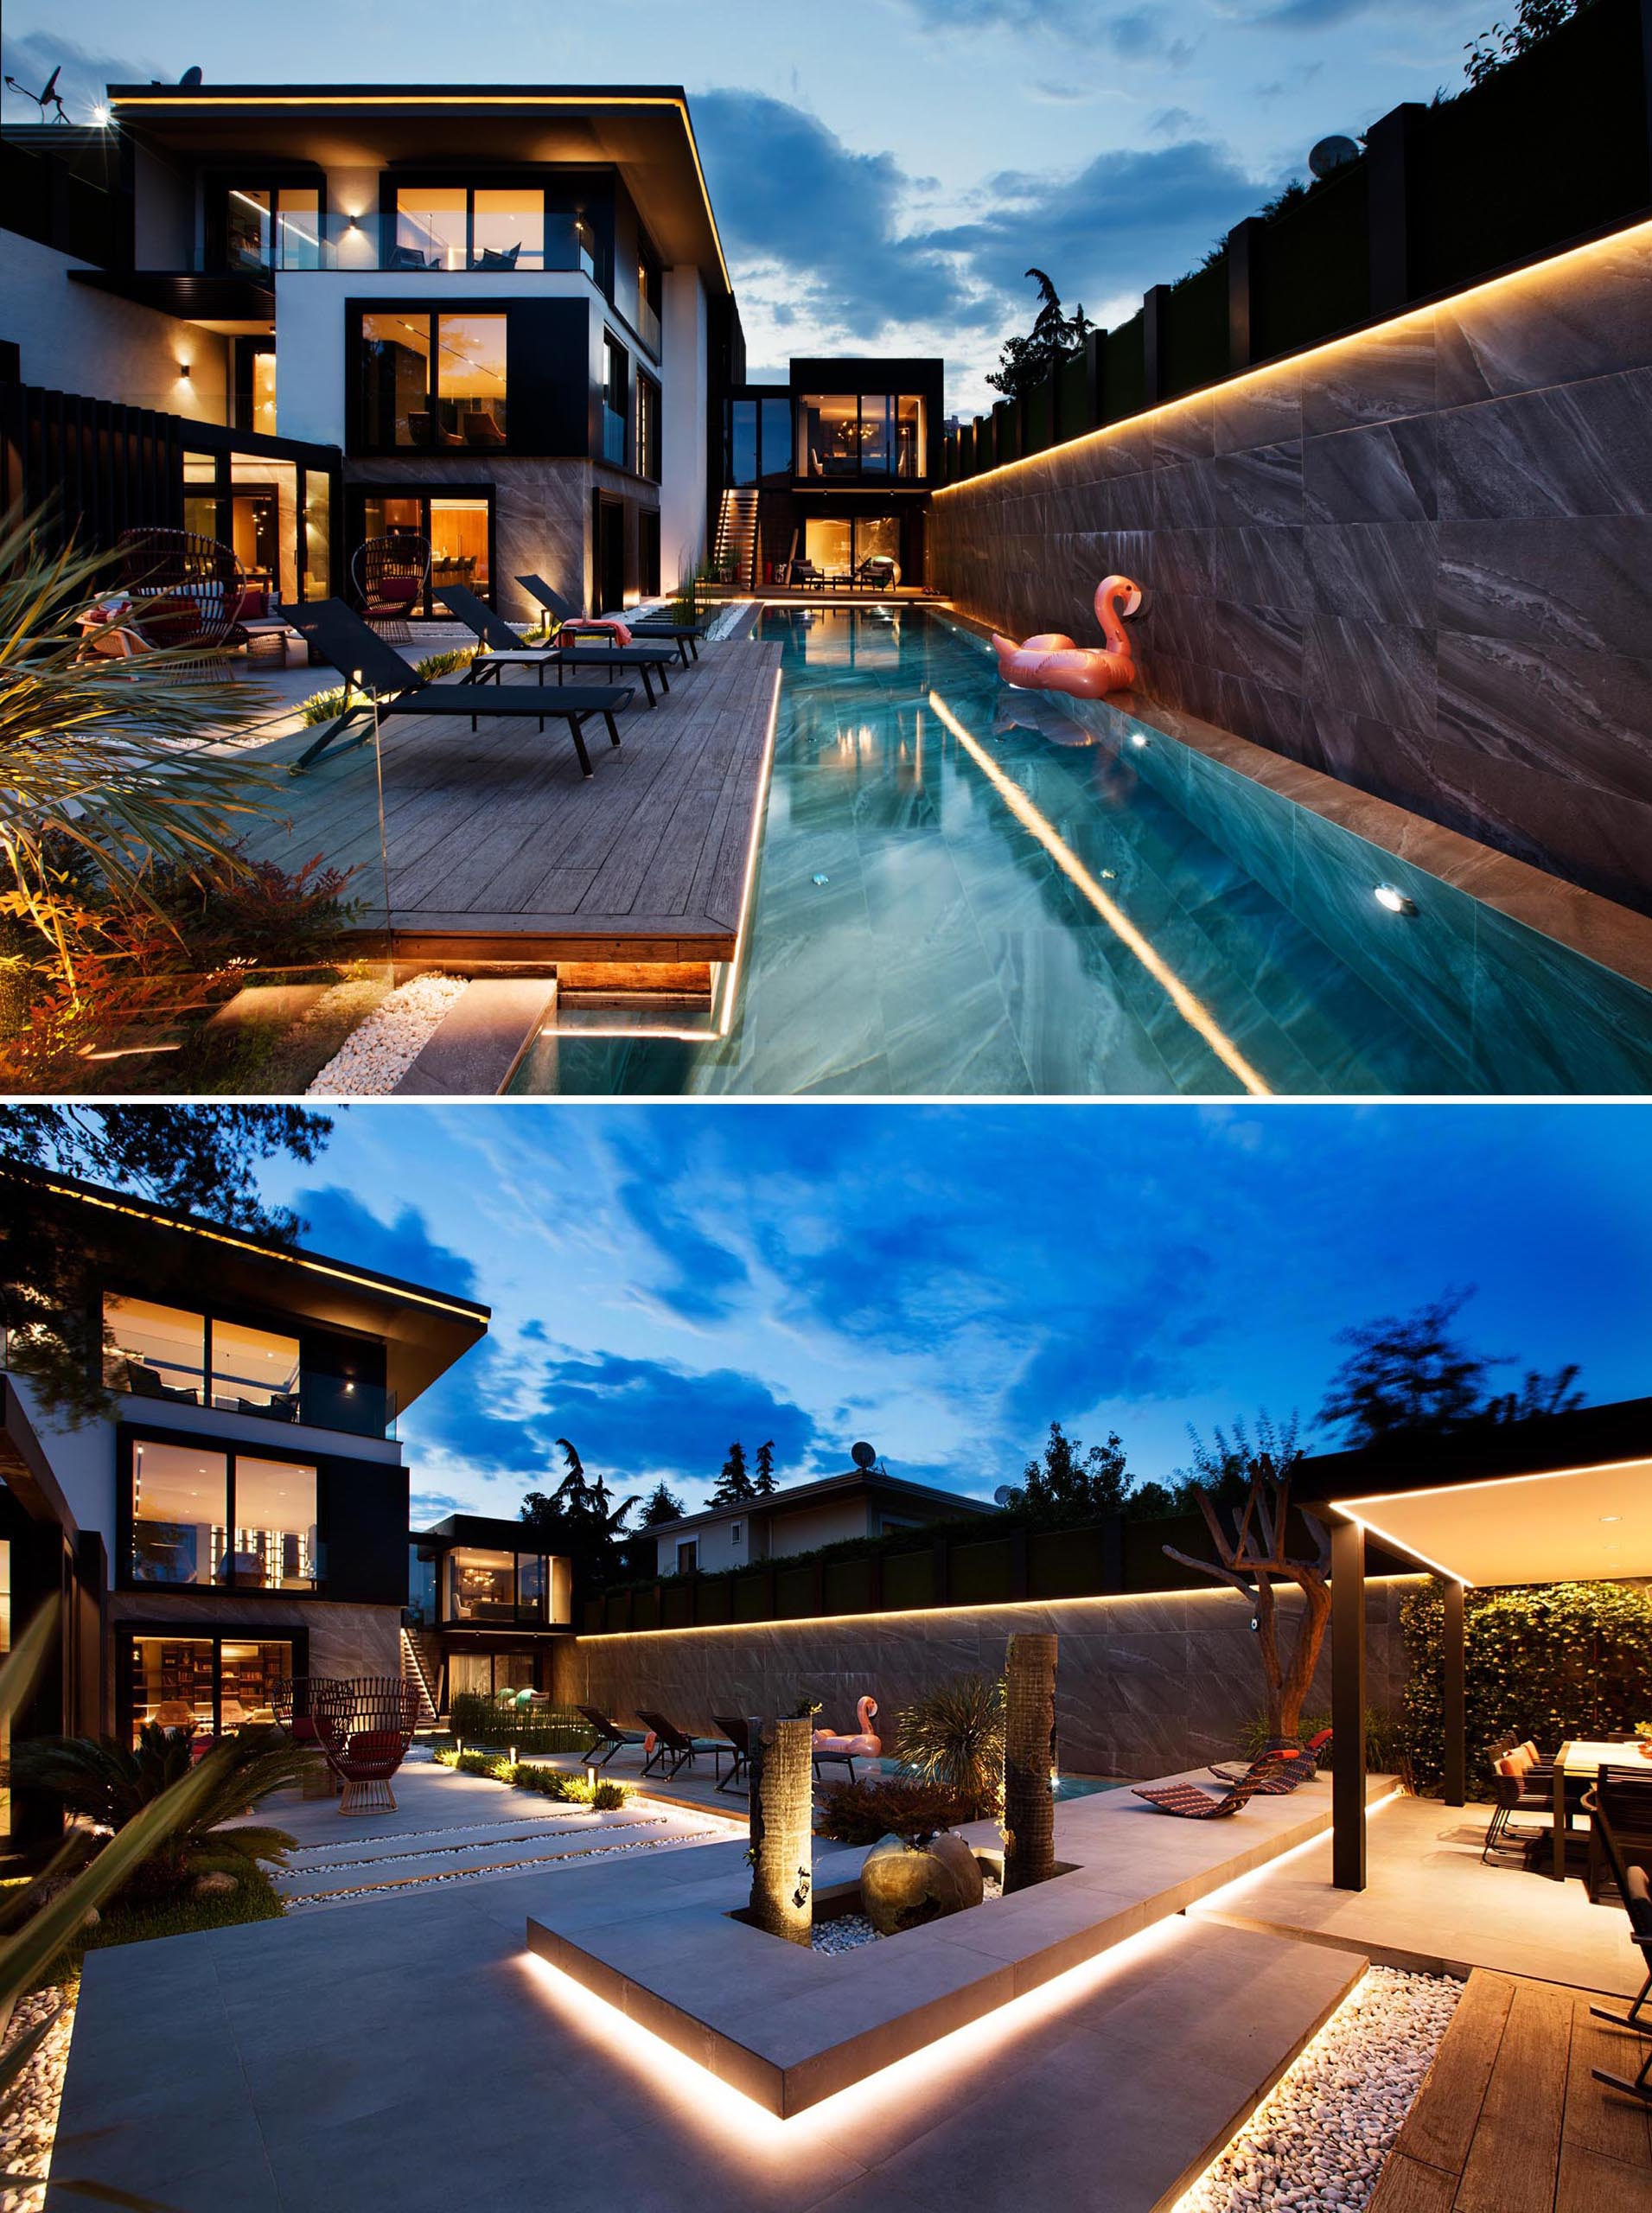 A modern house and swimming pool with extensive hidden lighting.